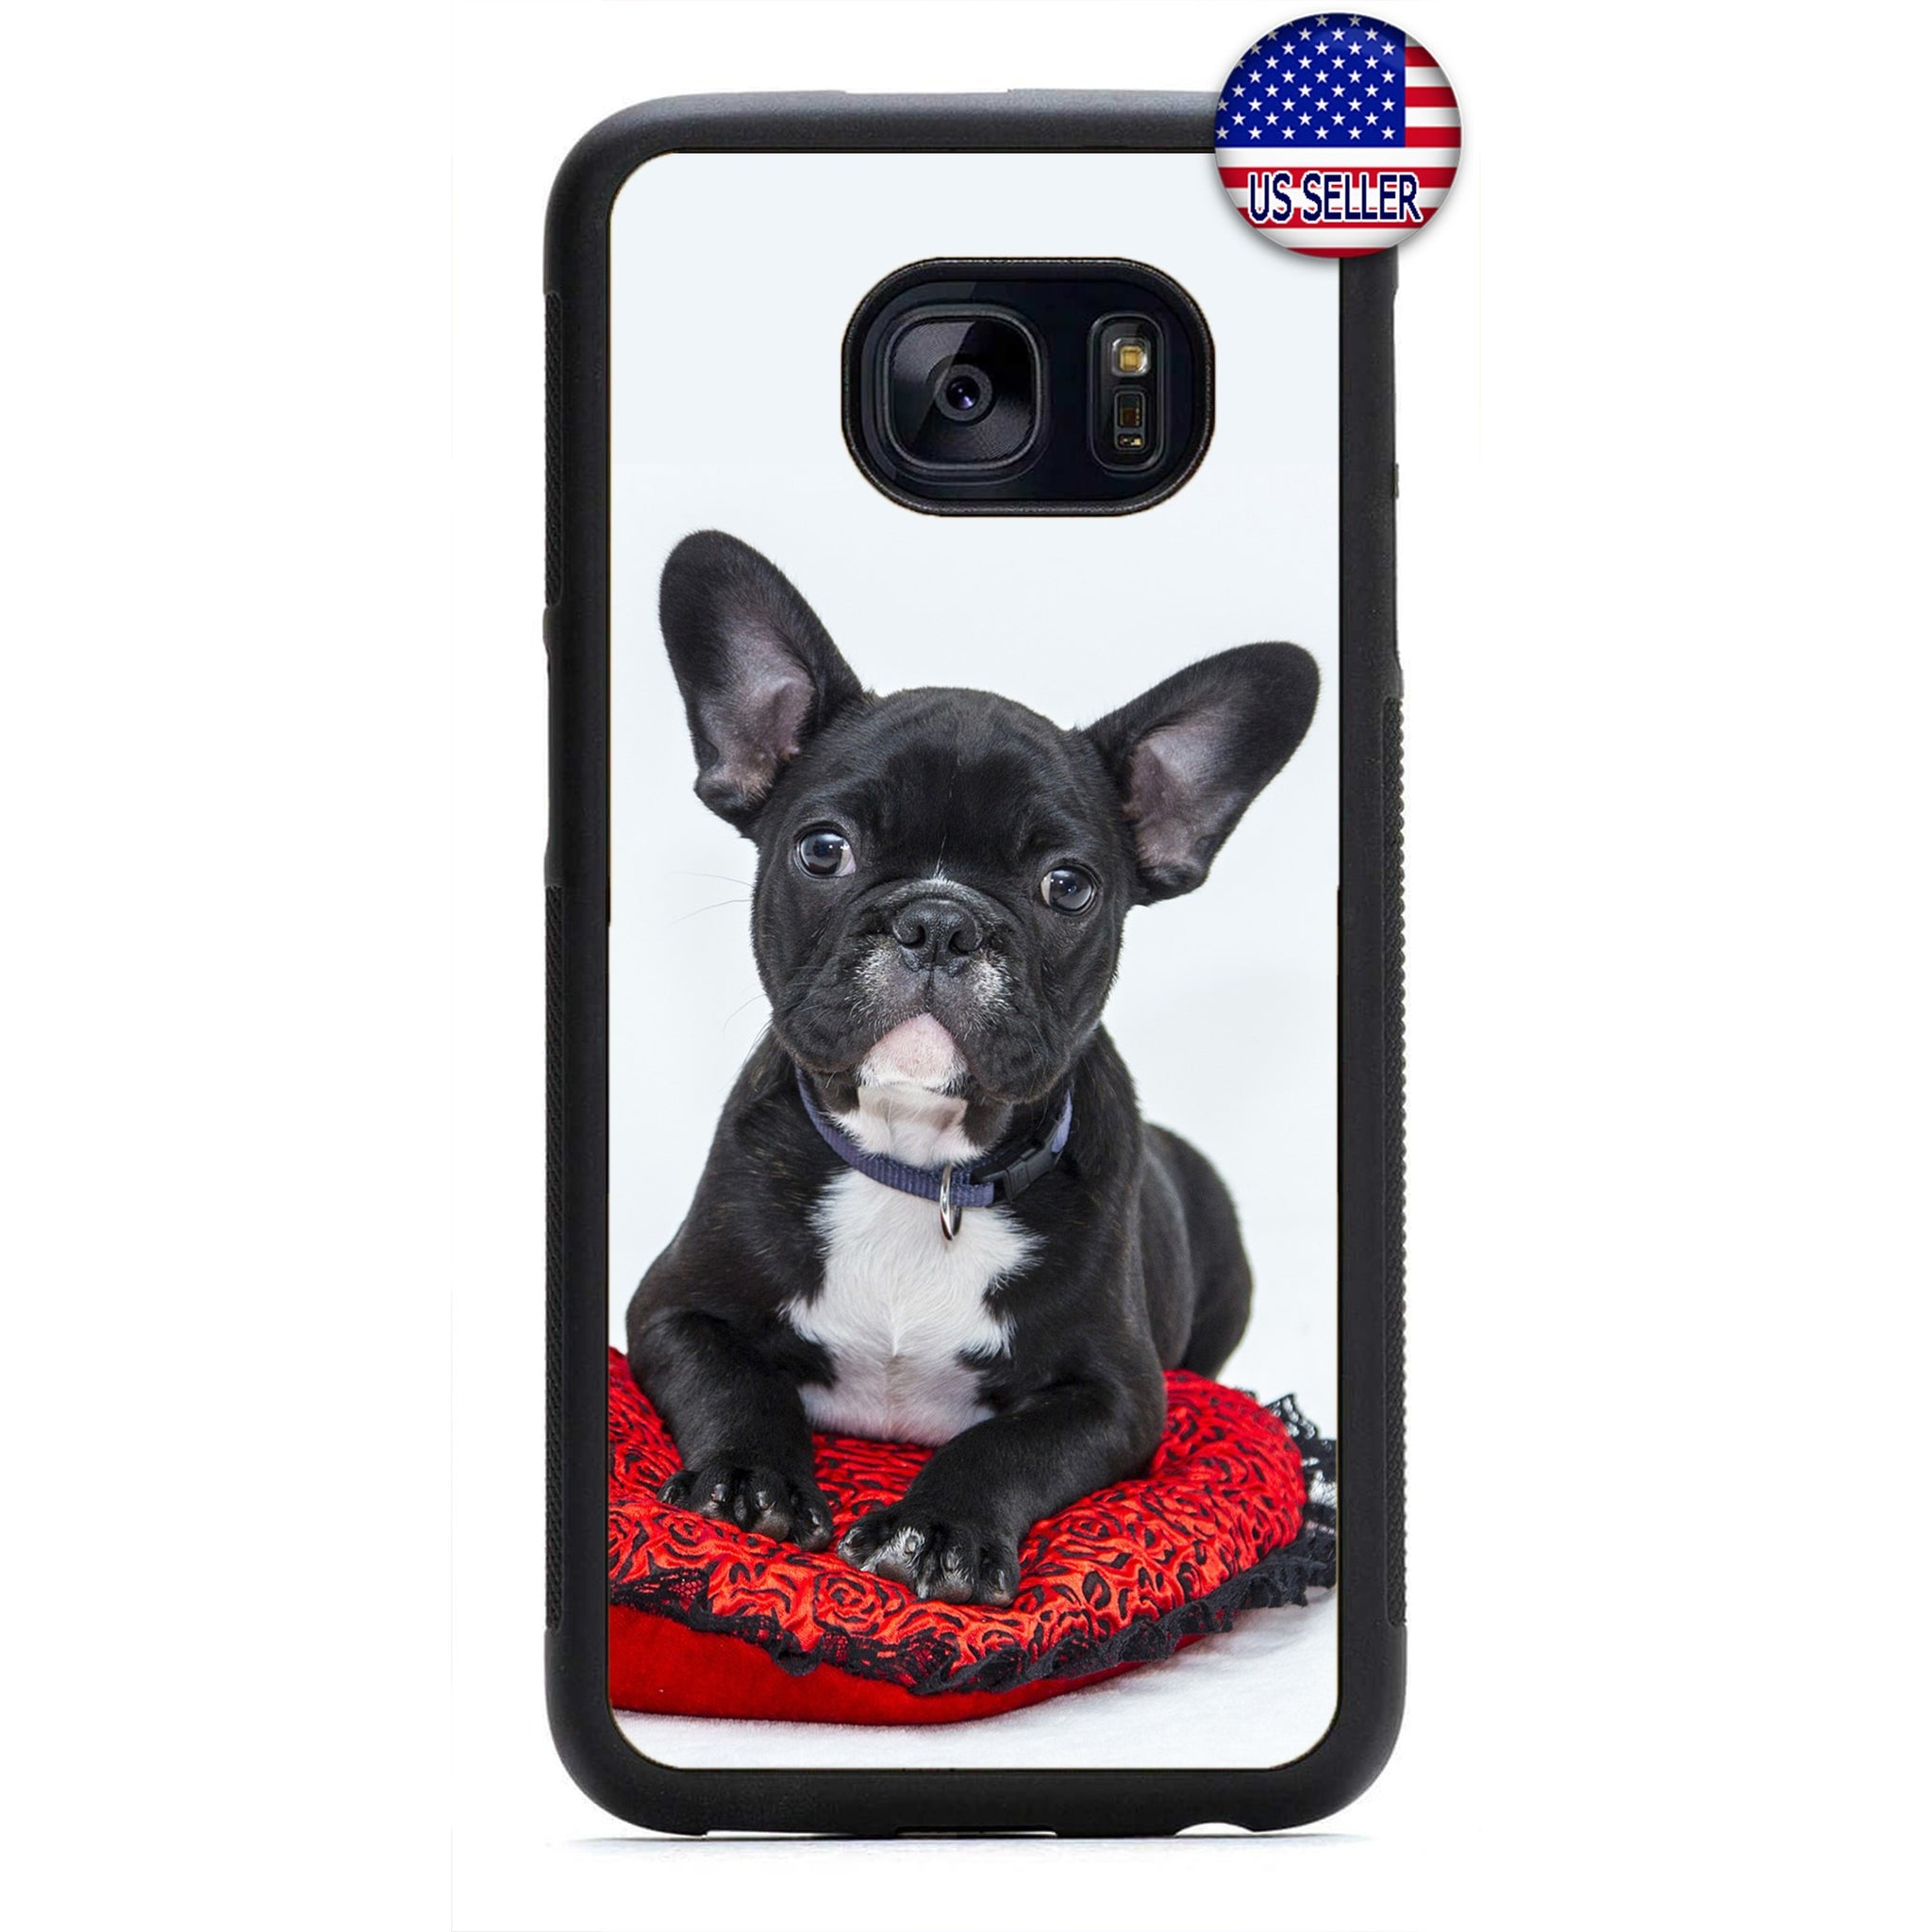 Puppy Boston Terrier Dog Rubber Case Cover For Samsung Galaxy Note